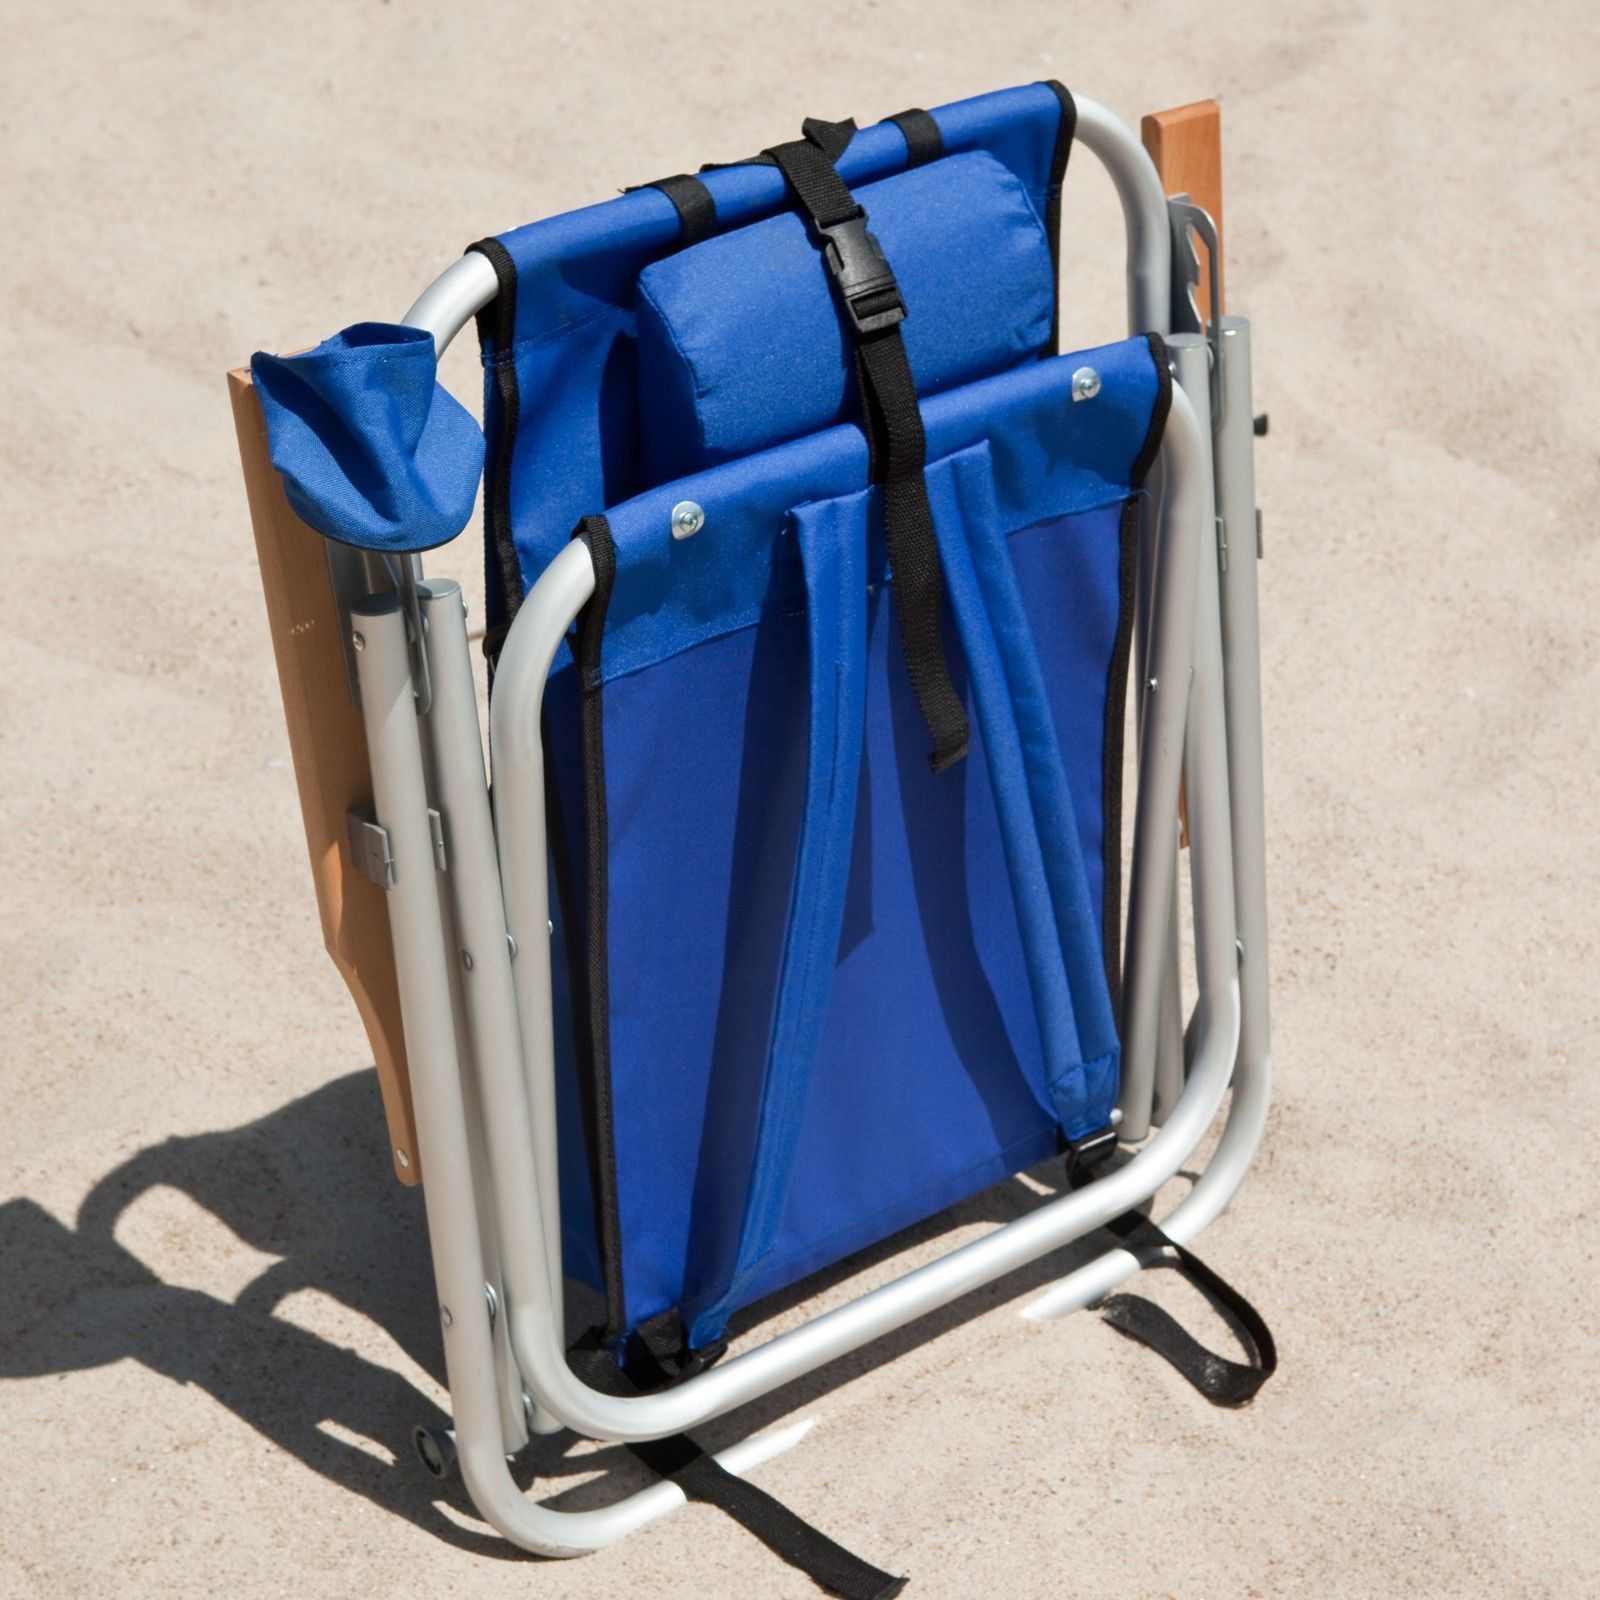 Aluminum Folding Lawn Chairs With Webbing